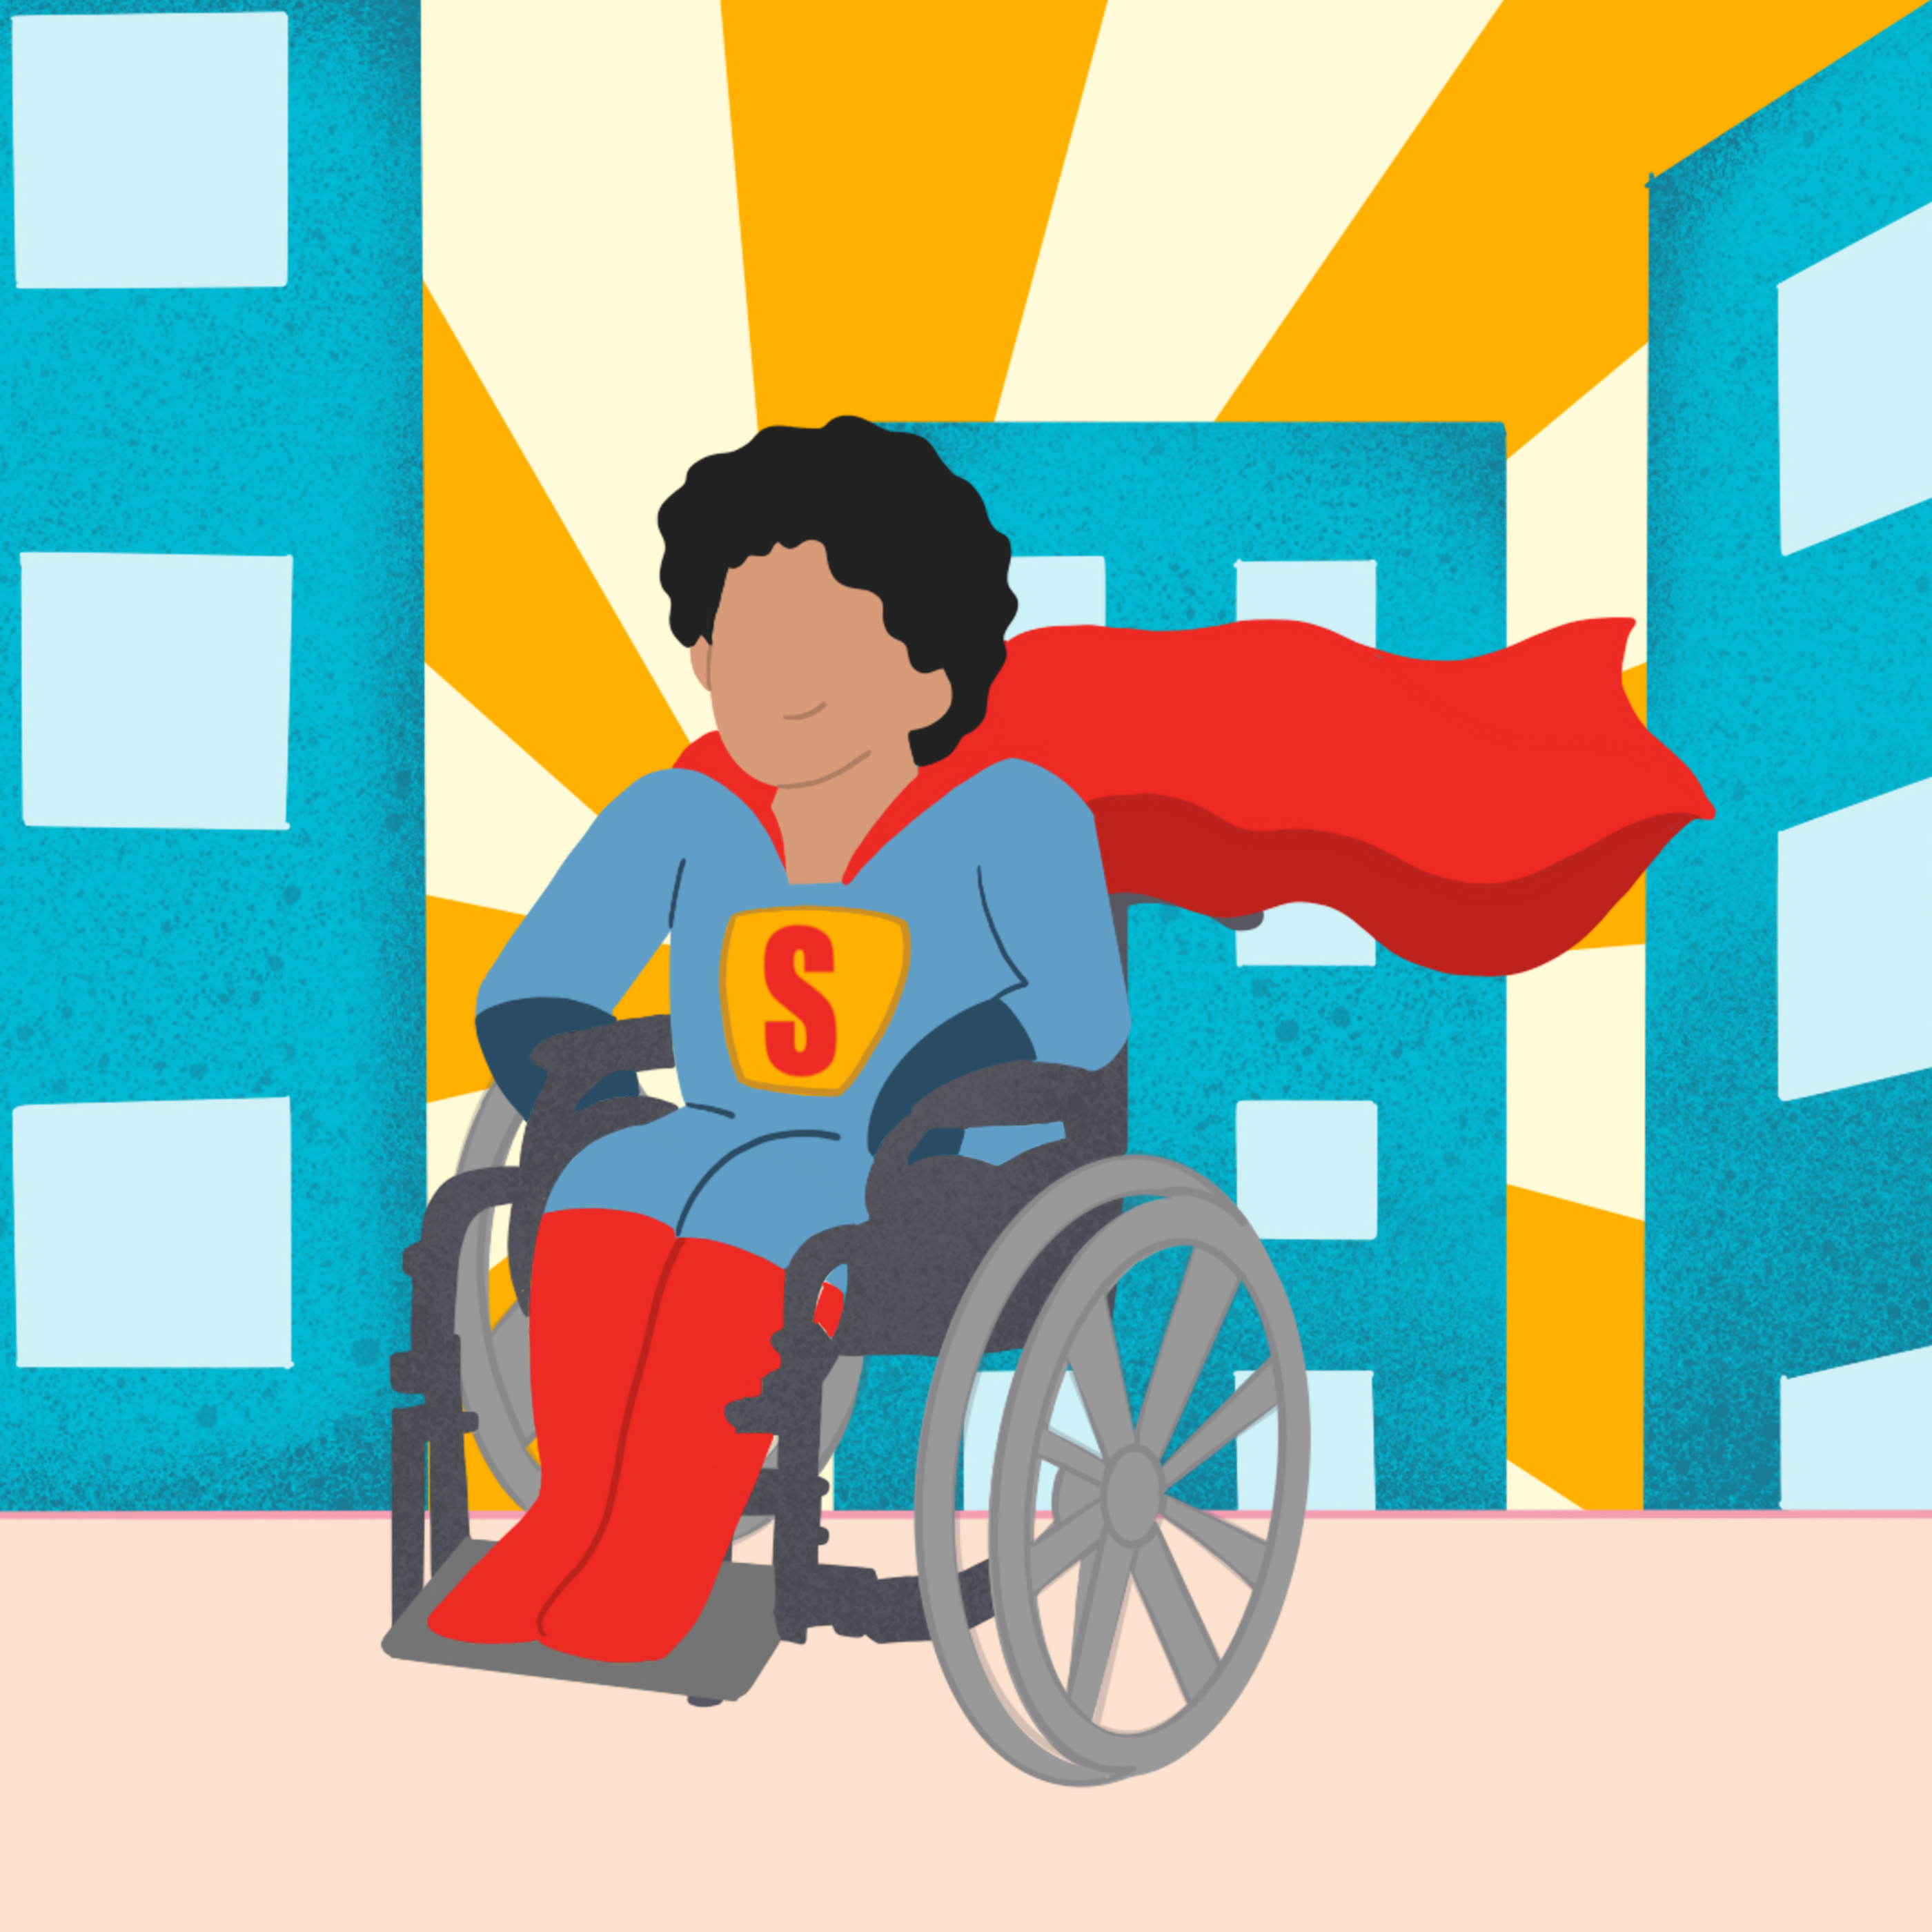 I'm an Adult With a Disability: Here's Why I'm Optimistic About Kids With Disabilities Today